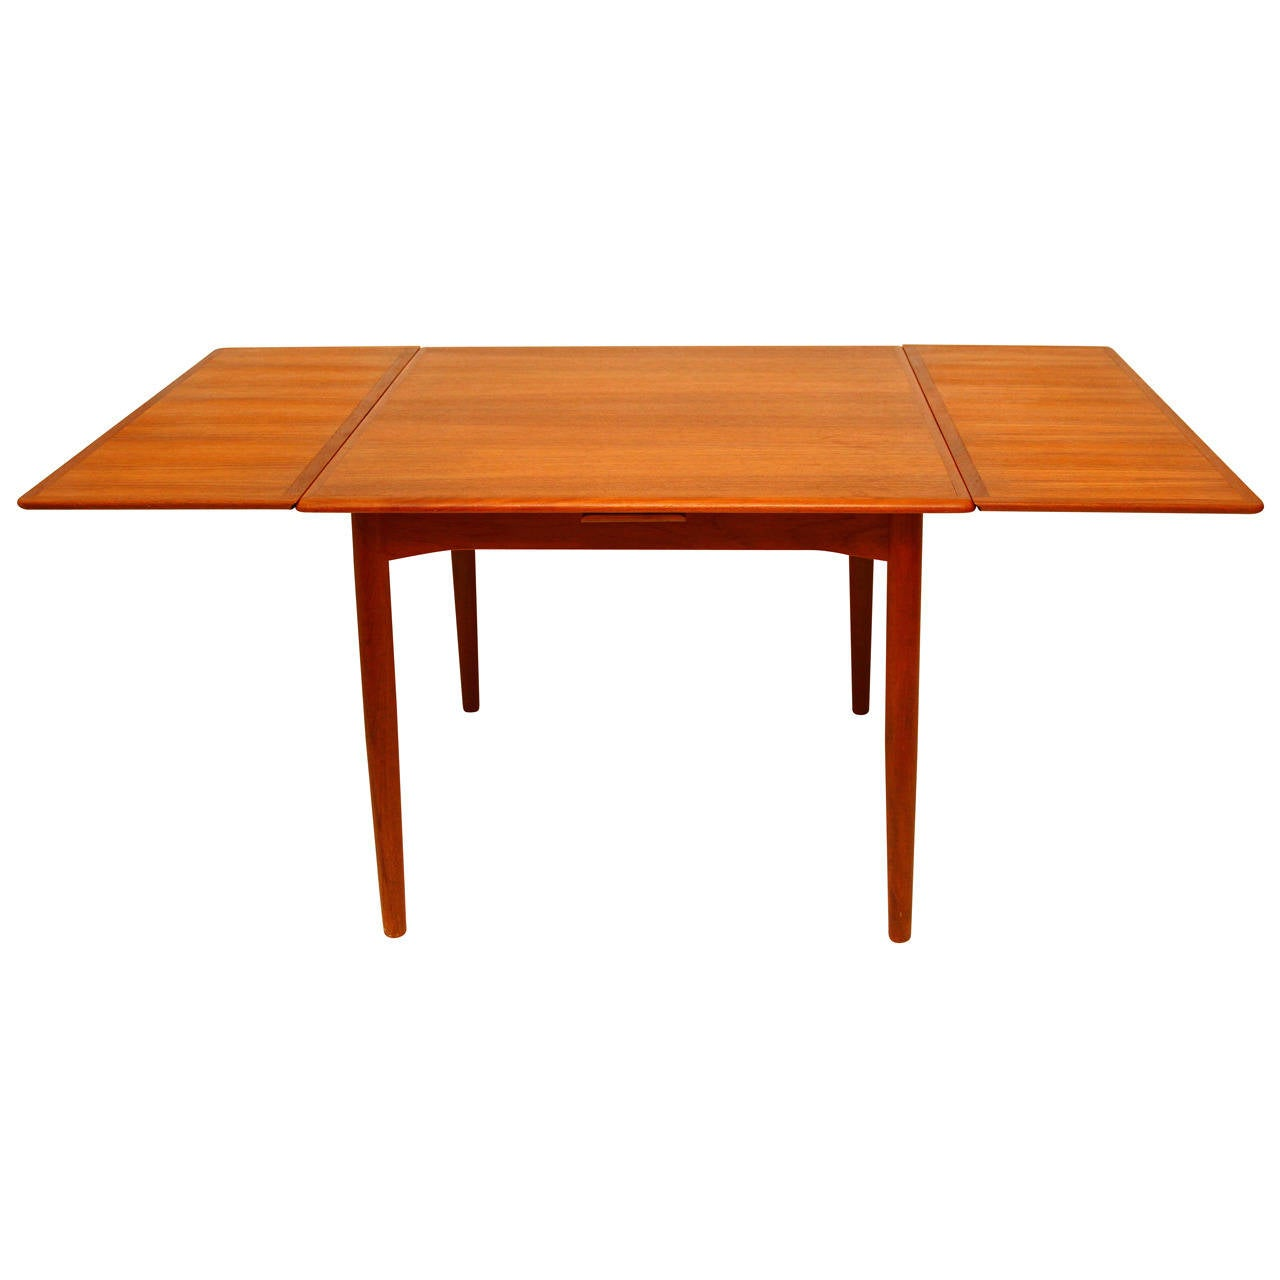 Extension dining table teak danish modern at 1stdibs for Extension dining table